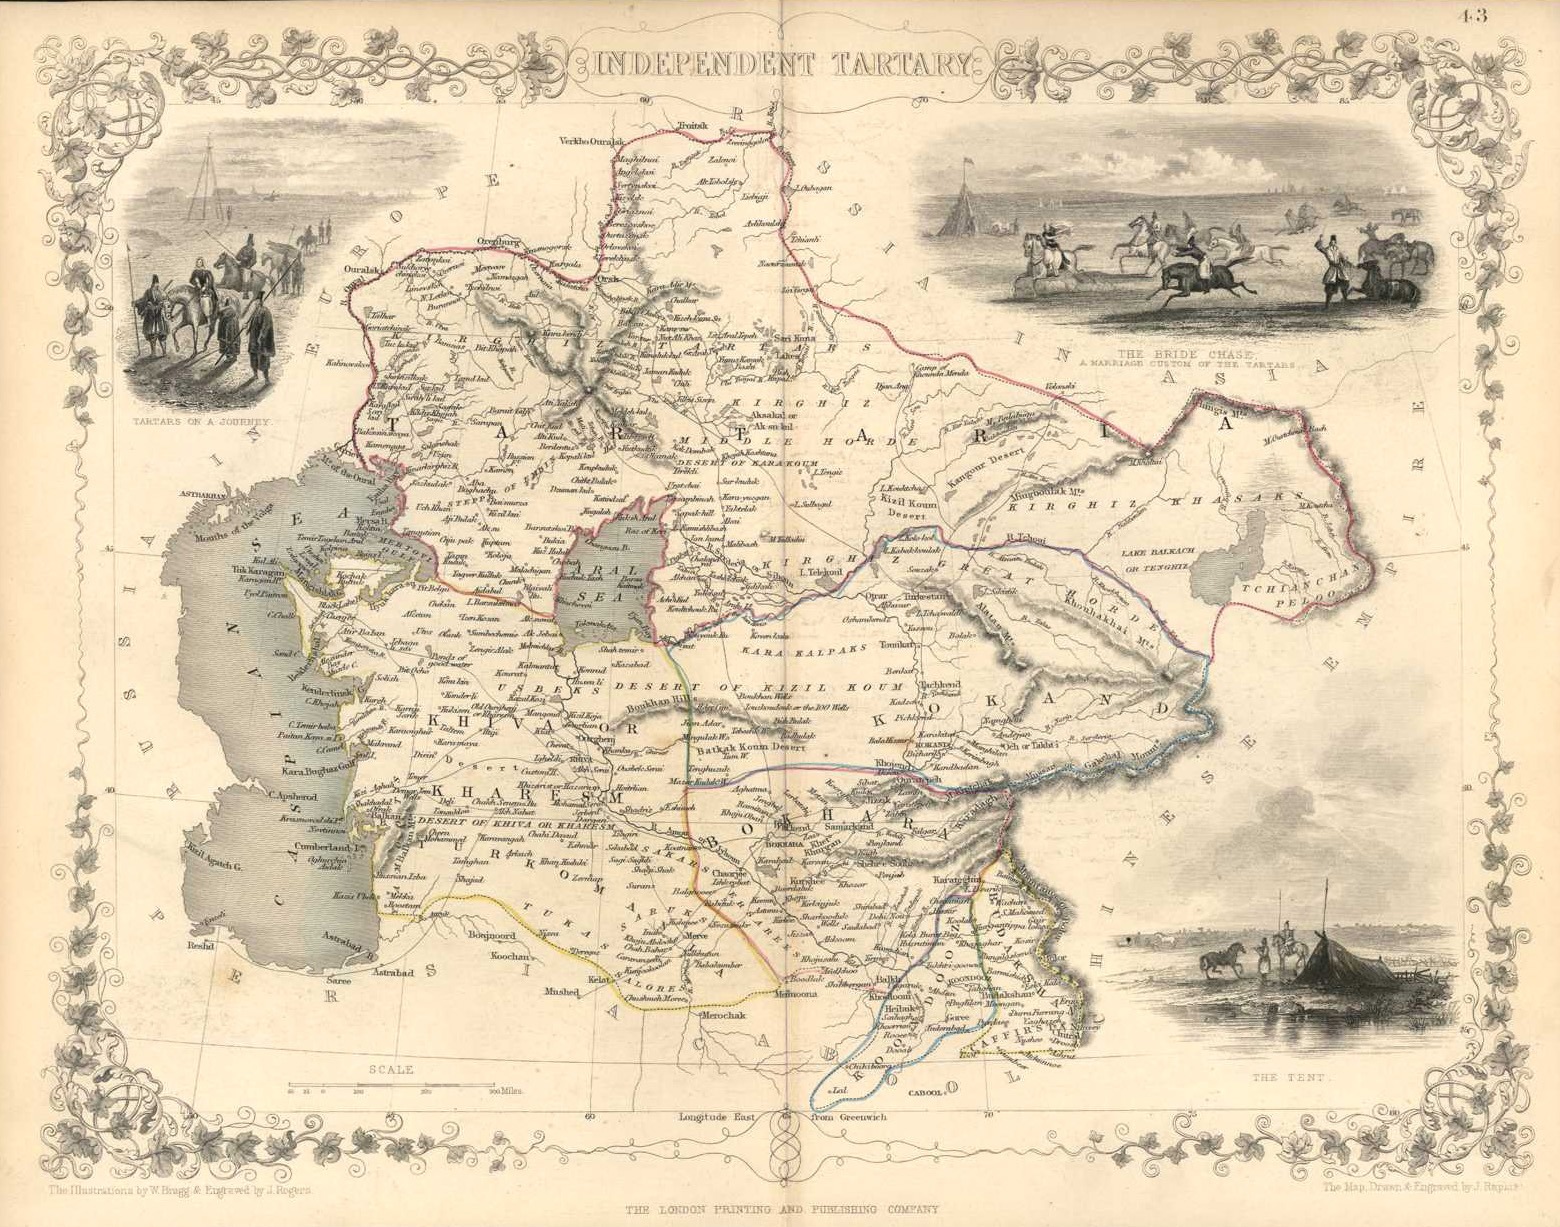 Independent Tartary antique map (Tartars, Bride Chase & Tent). c1854